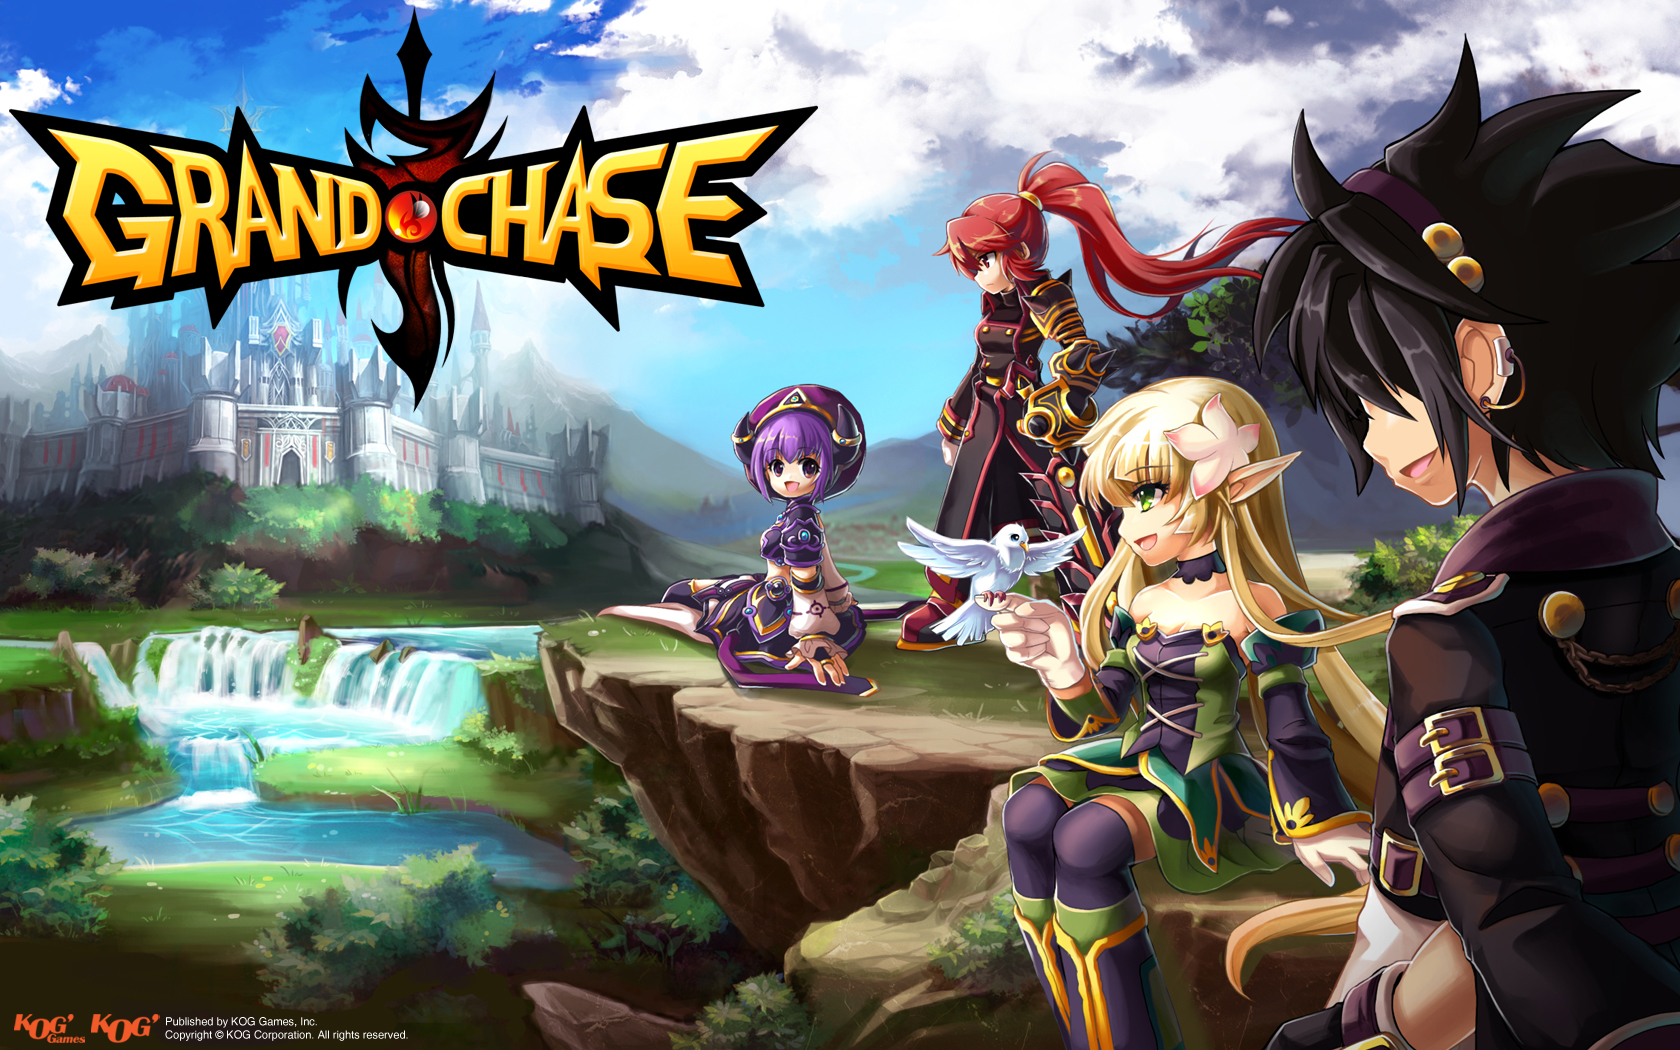 High Resolution Wallpaper | Grand Chase 1680x1050 px